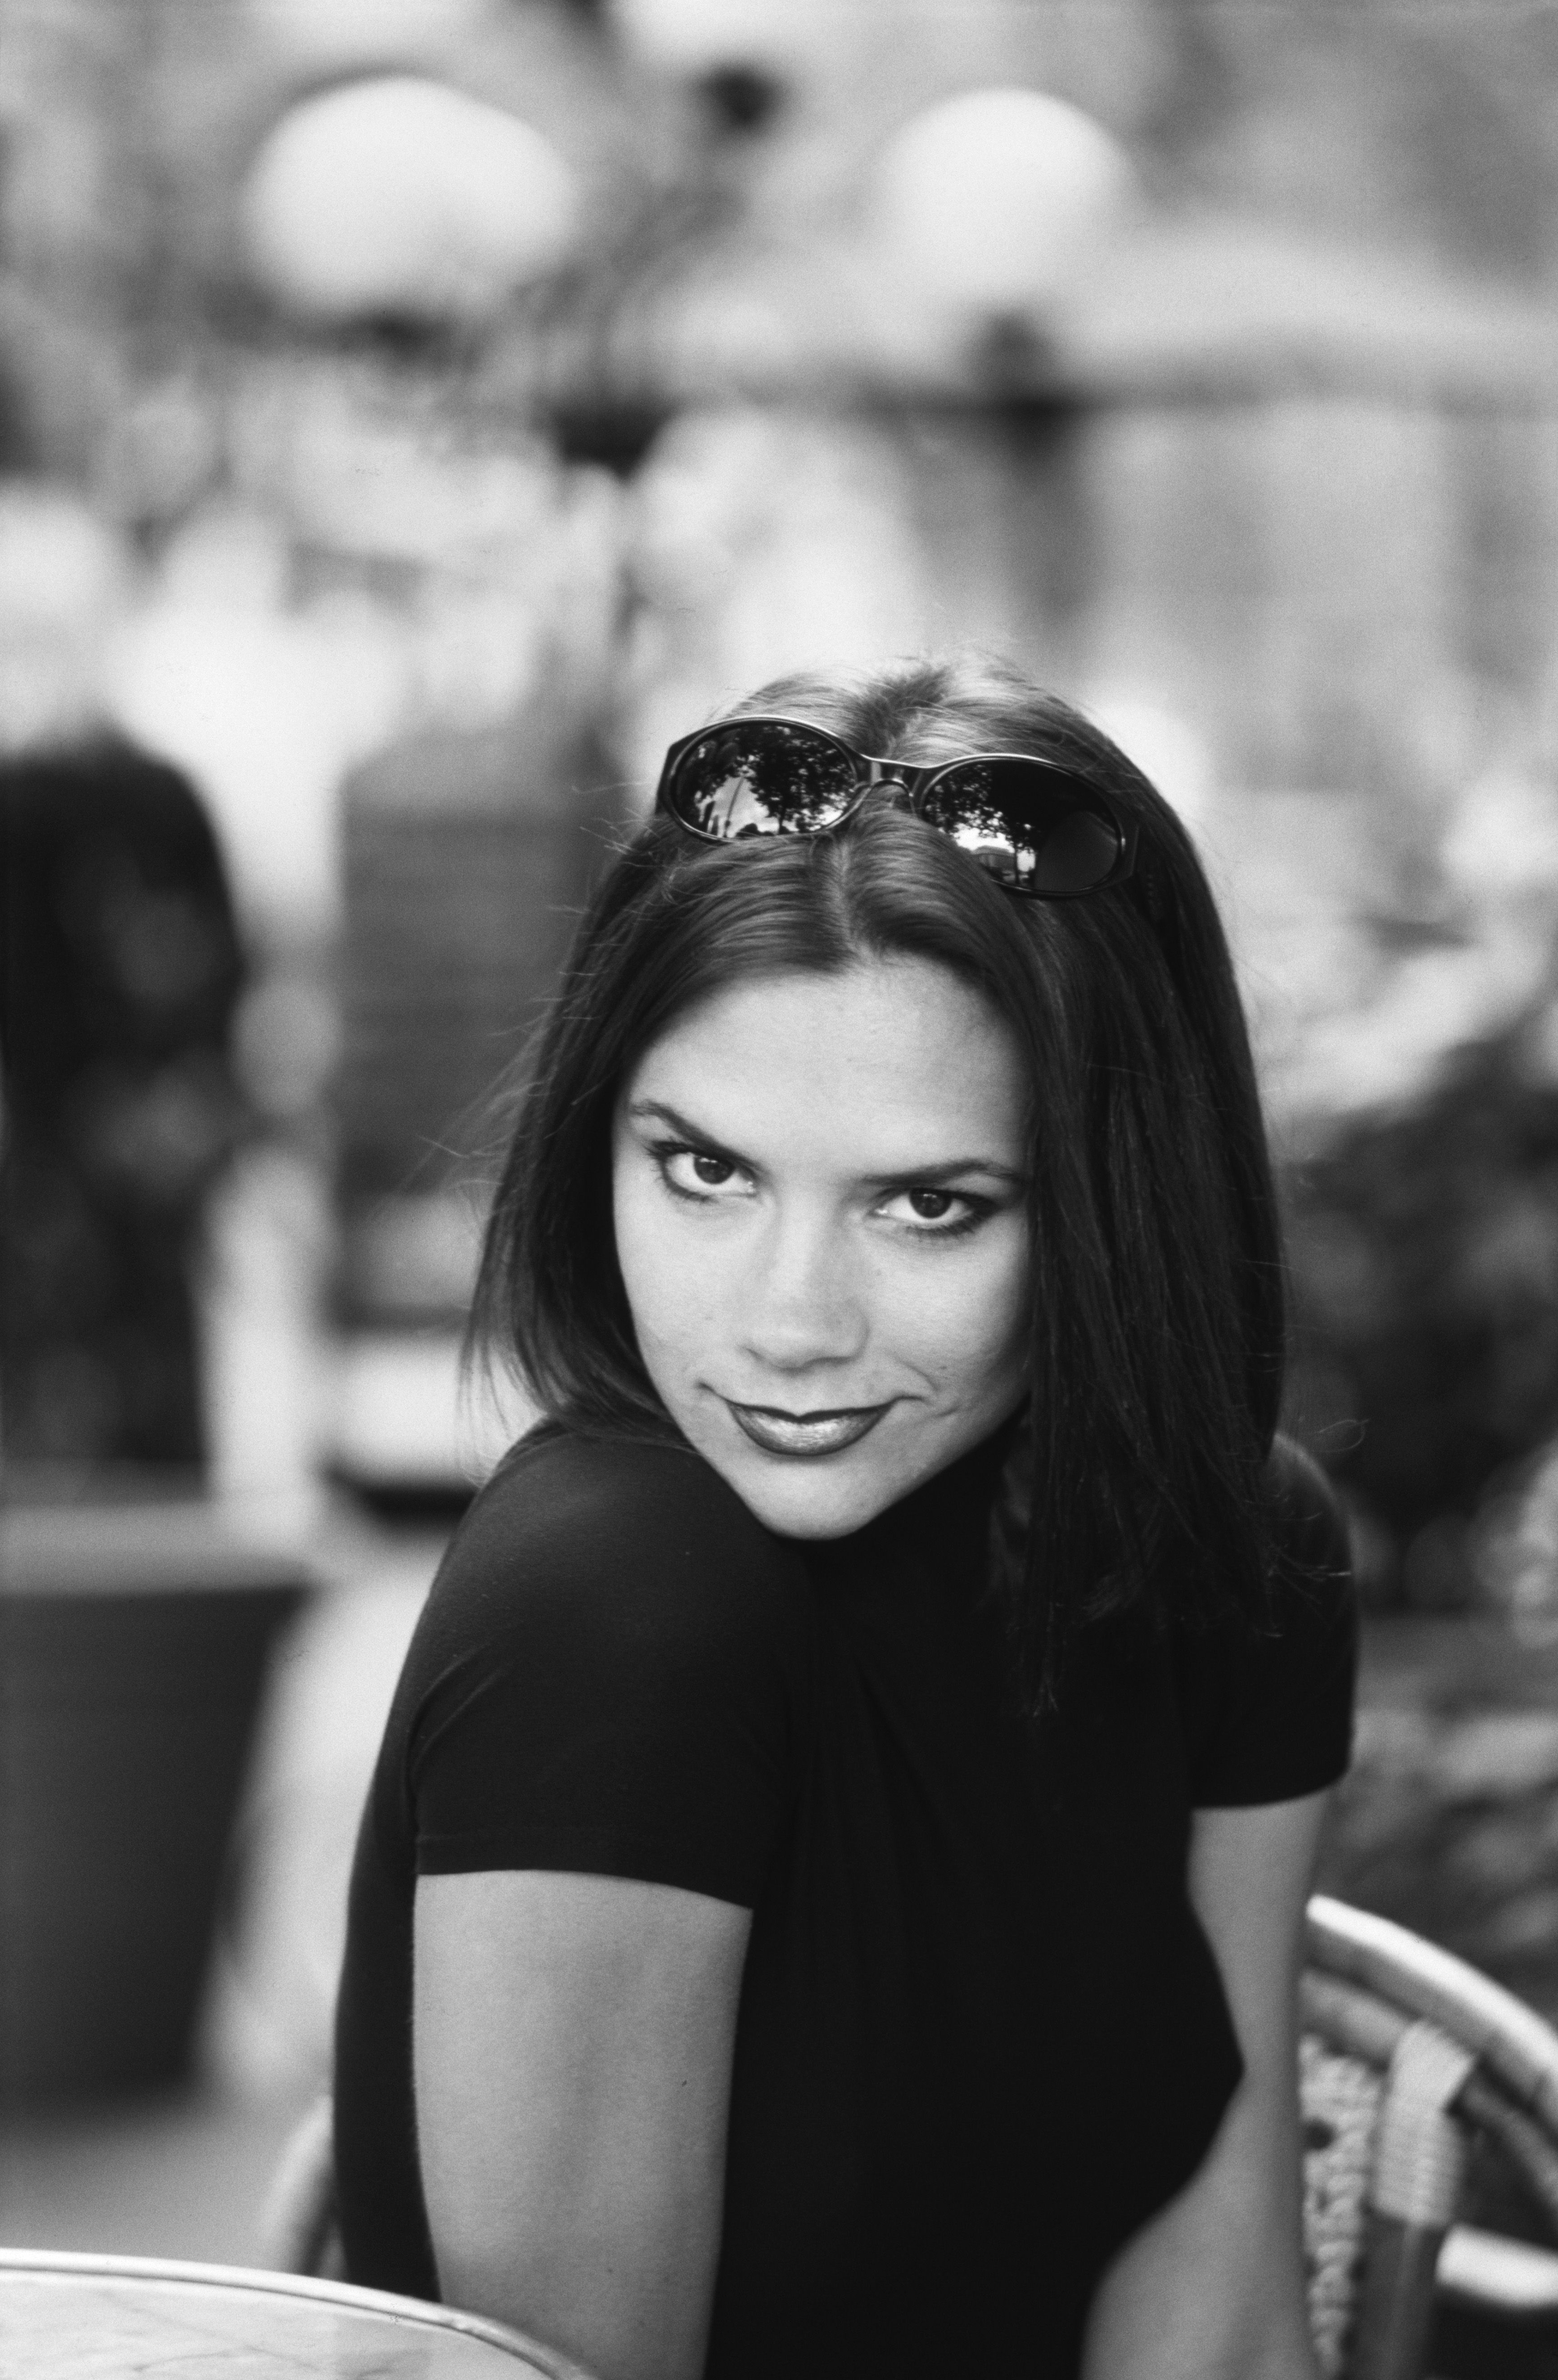 Victoria Beckham pokes fun at her Spice Girls self with throwback snap